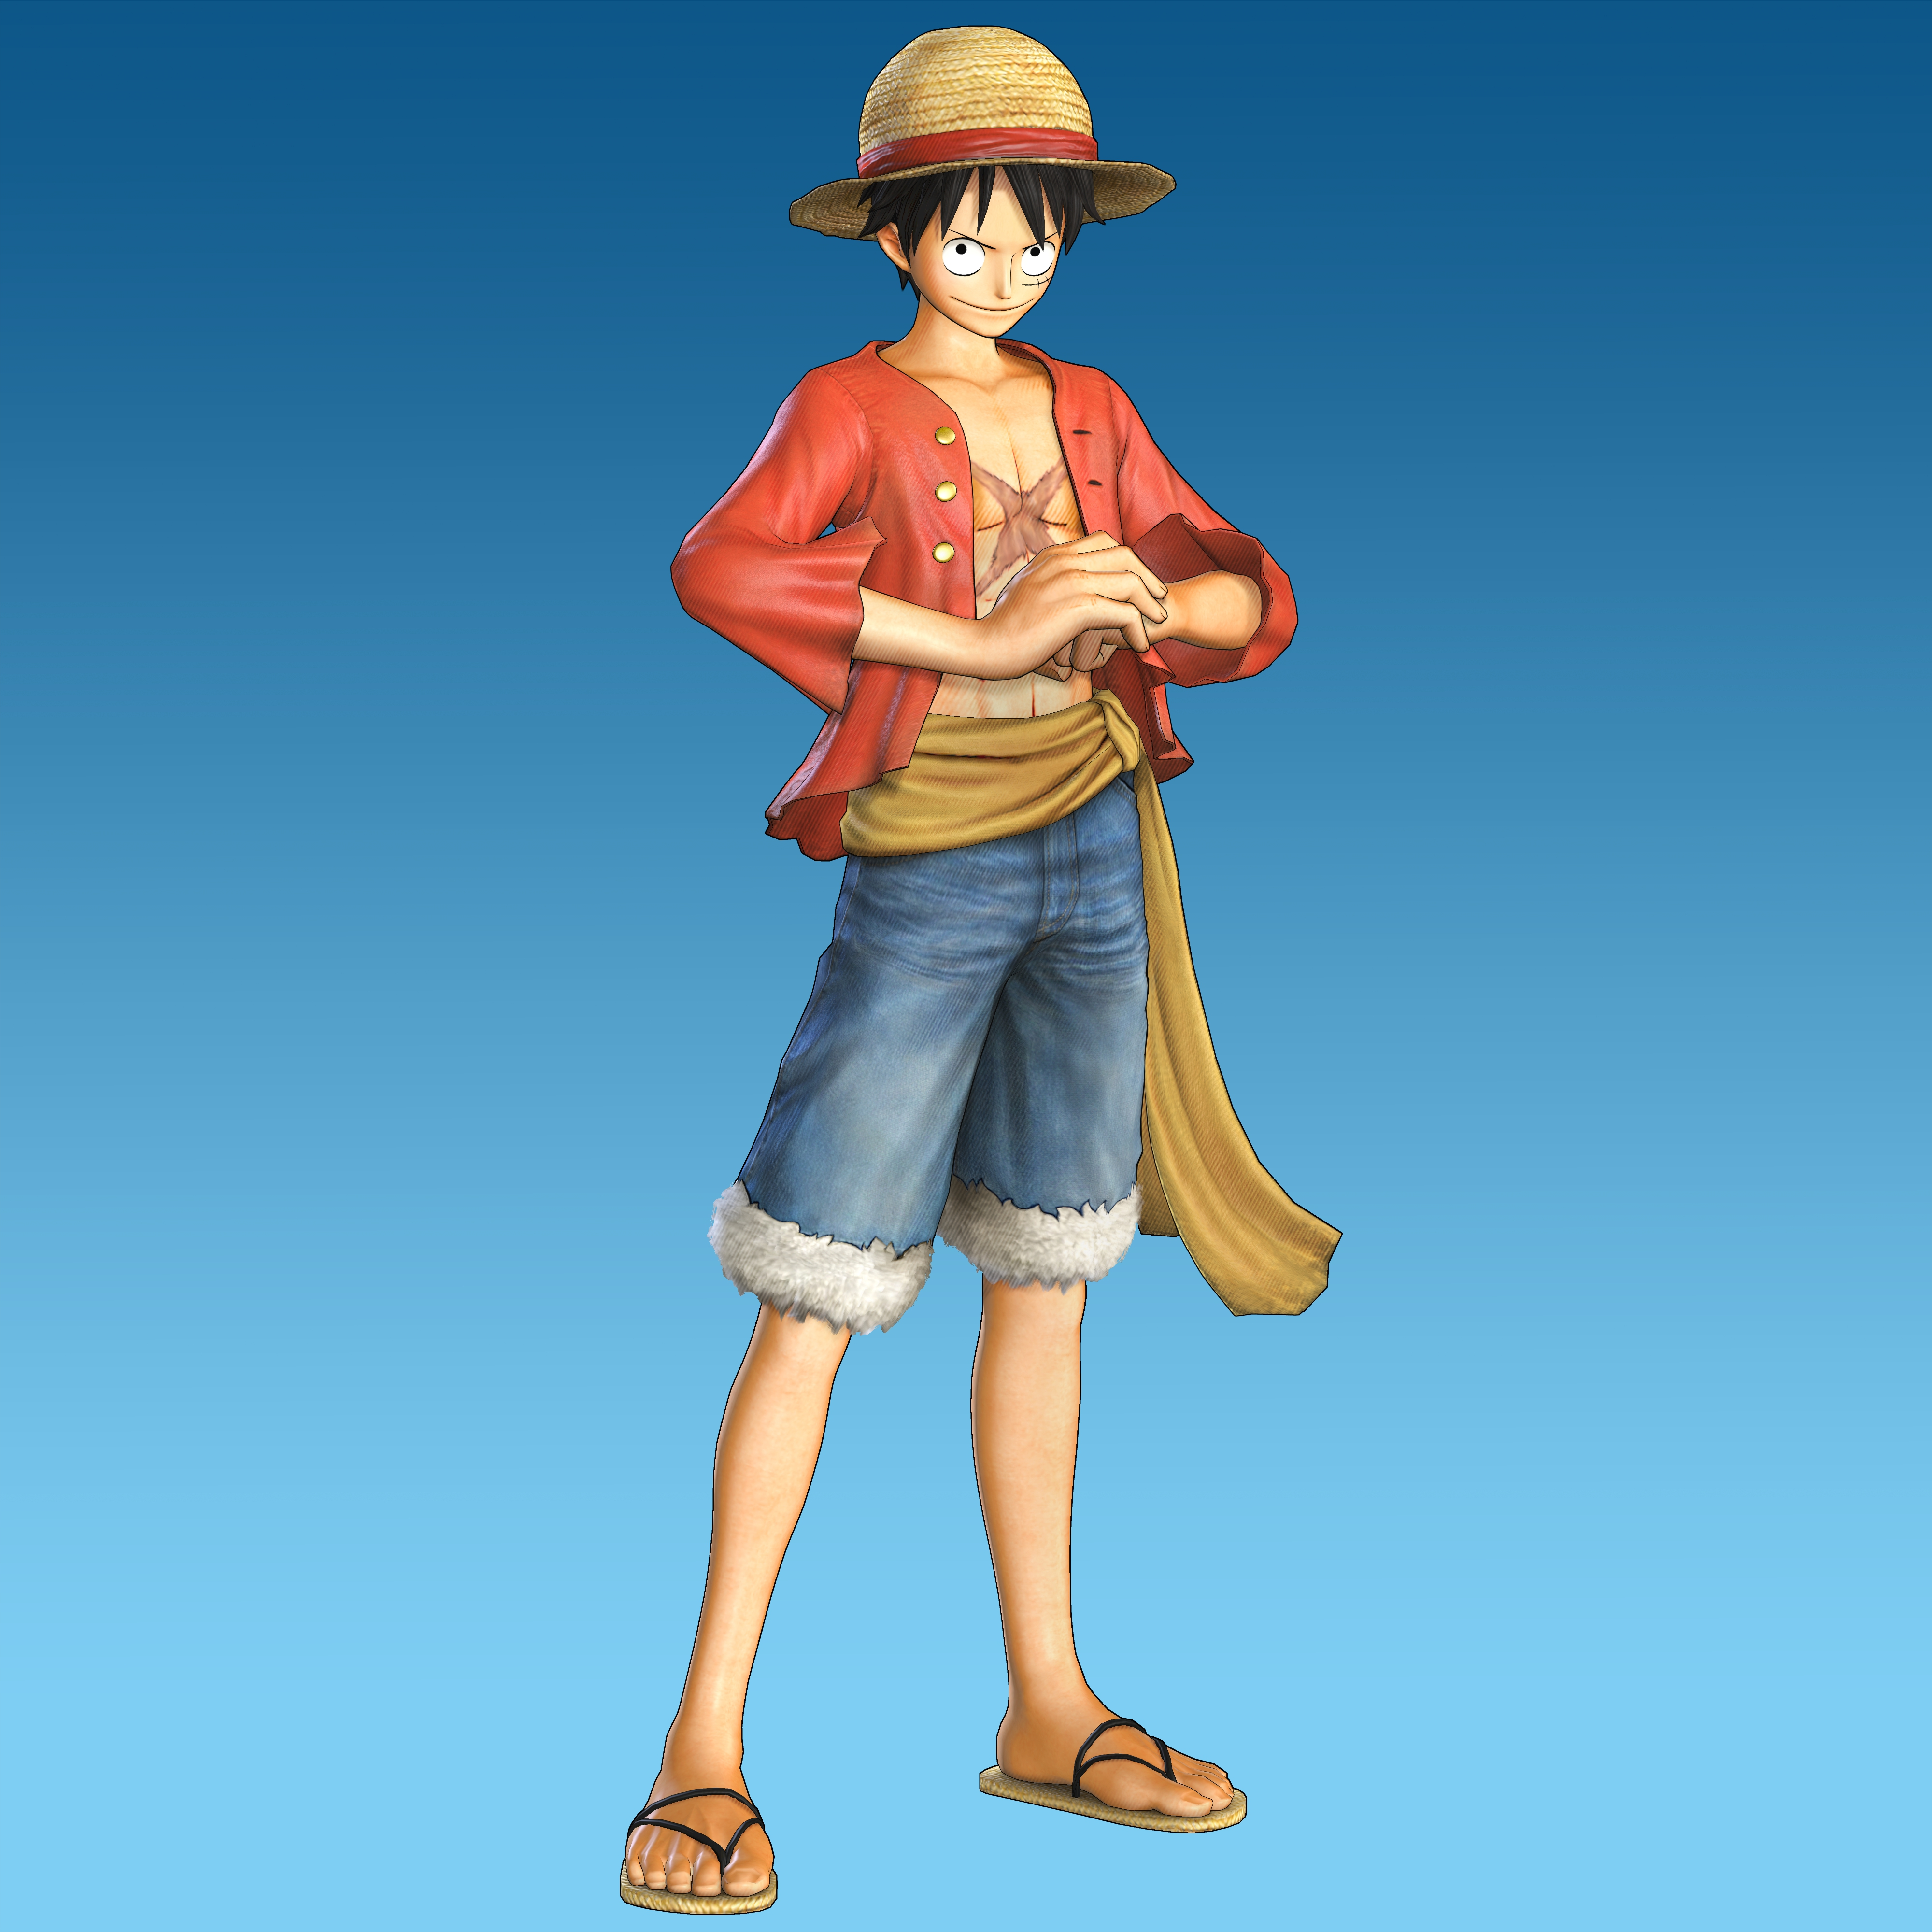 One Piece: Pirate Warriors 2 Has Dynasty Warriors Vibes